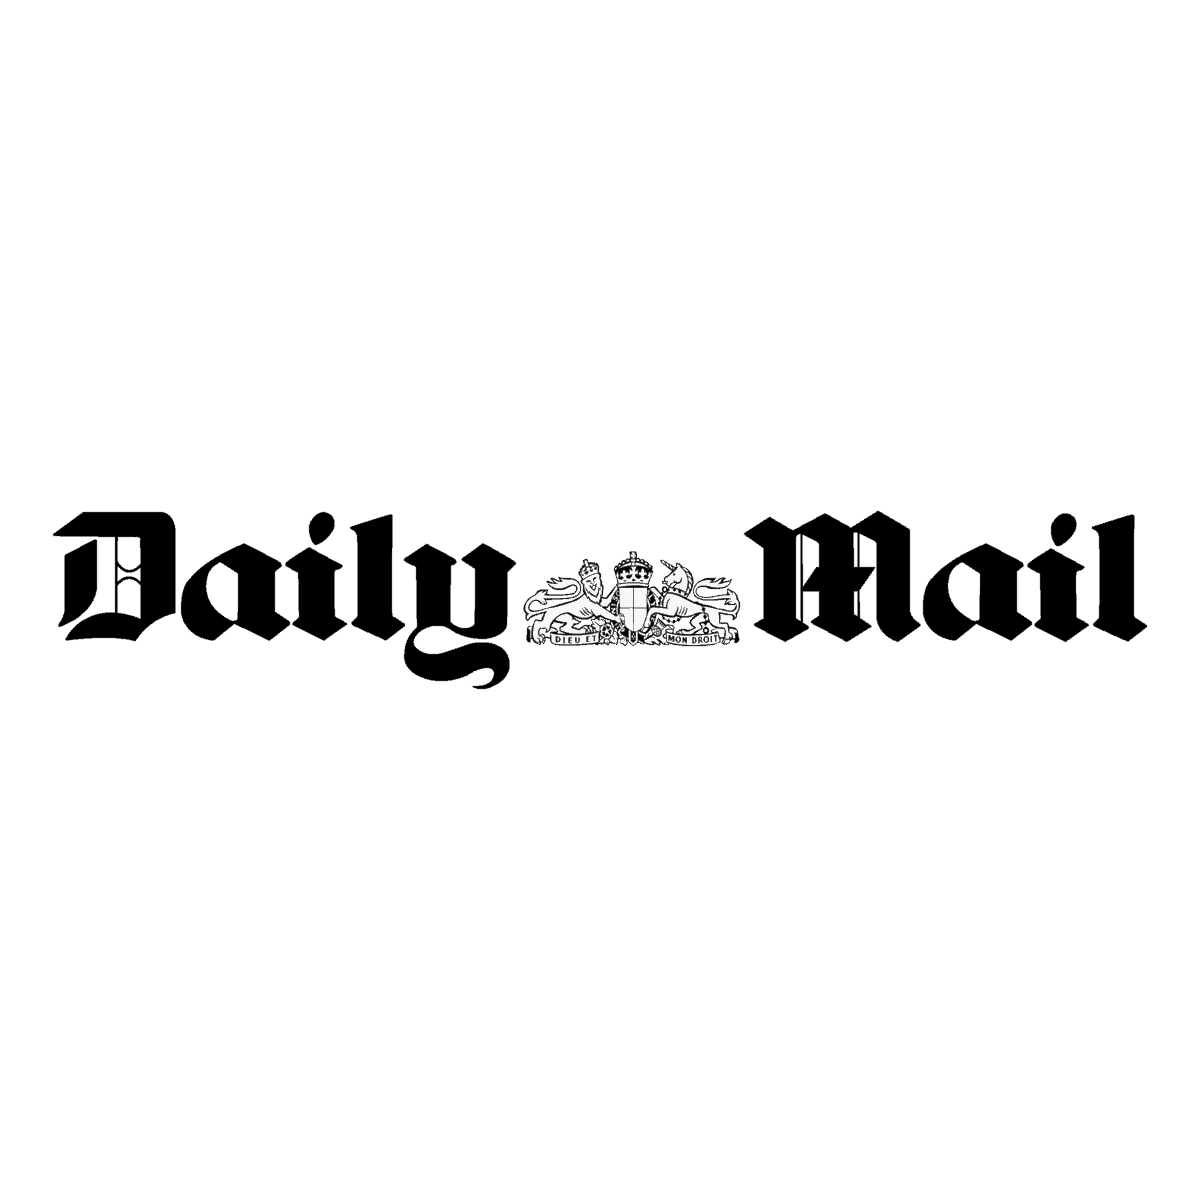 https://specialstrong.com/wp-content/uploads/2019/09/daily-mail-logo-png-transparent.png